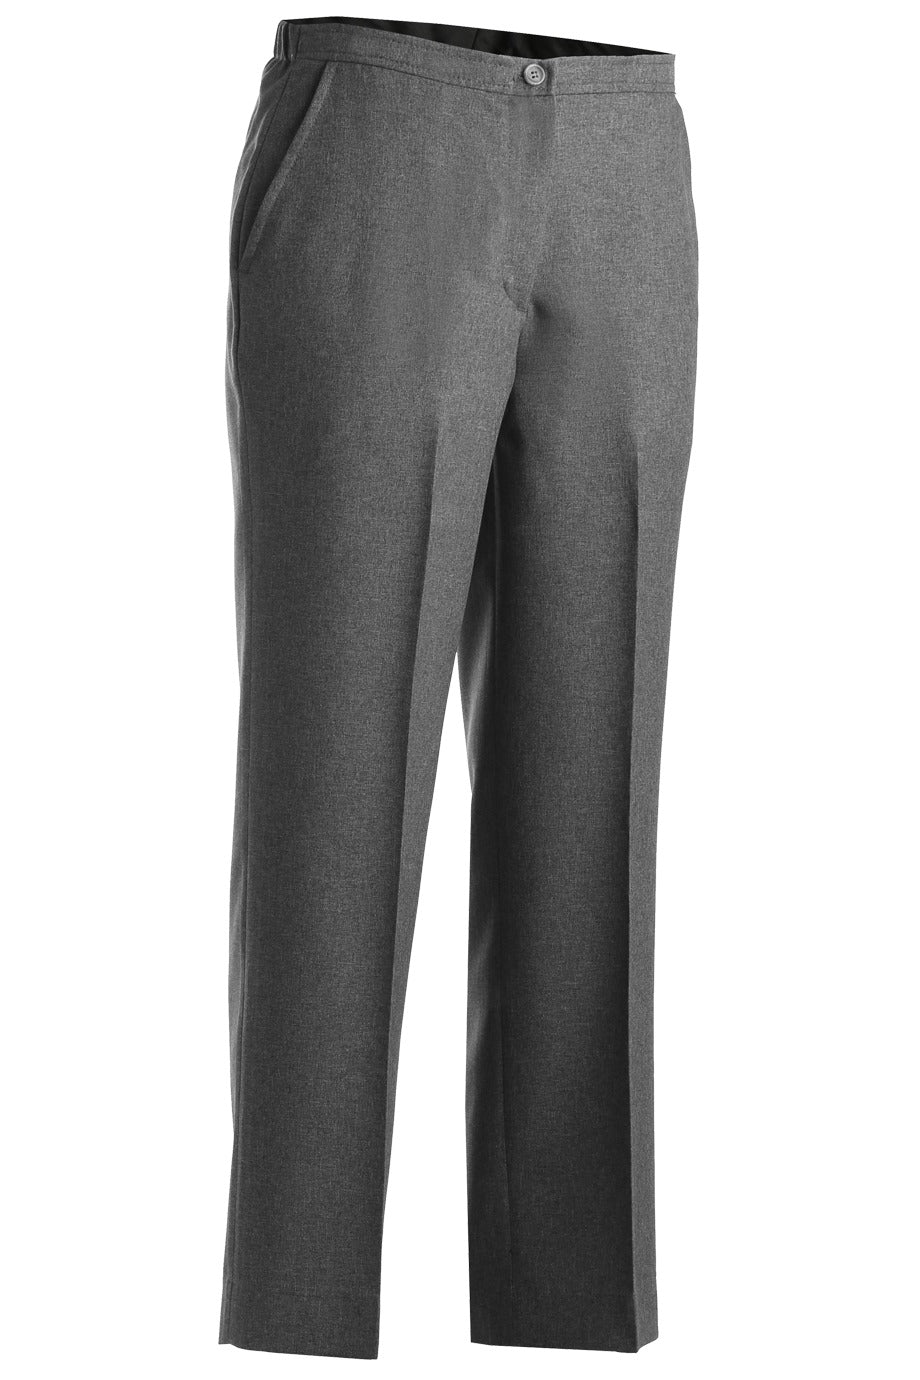 GIRLS GREY PANT ( REQUIRED ) IN-STORE PURCHASE ONLY 2 WEEK TURNAROUND